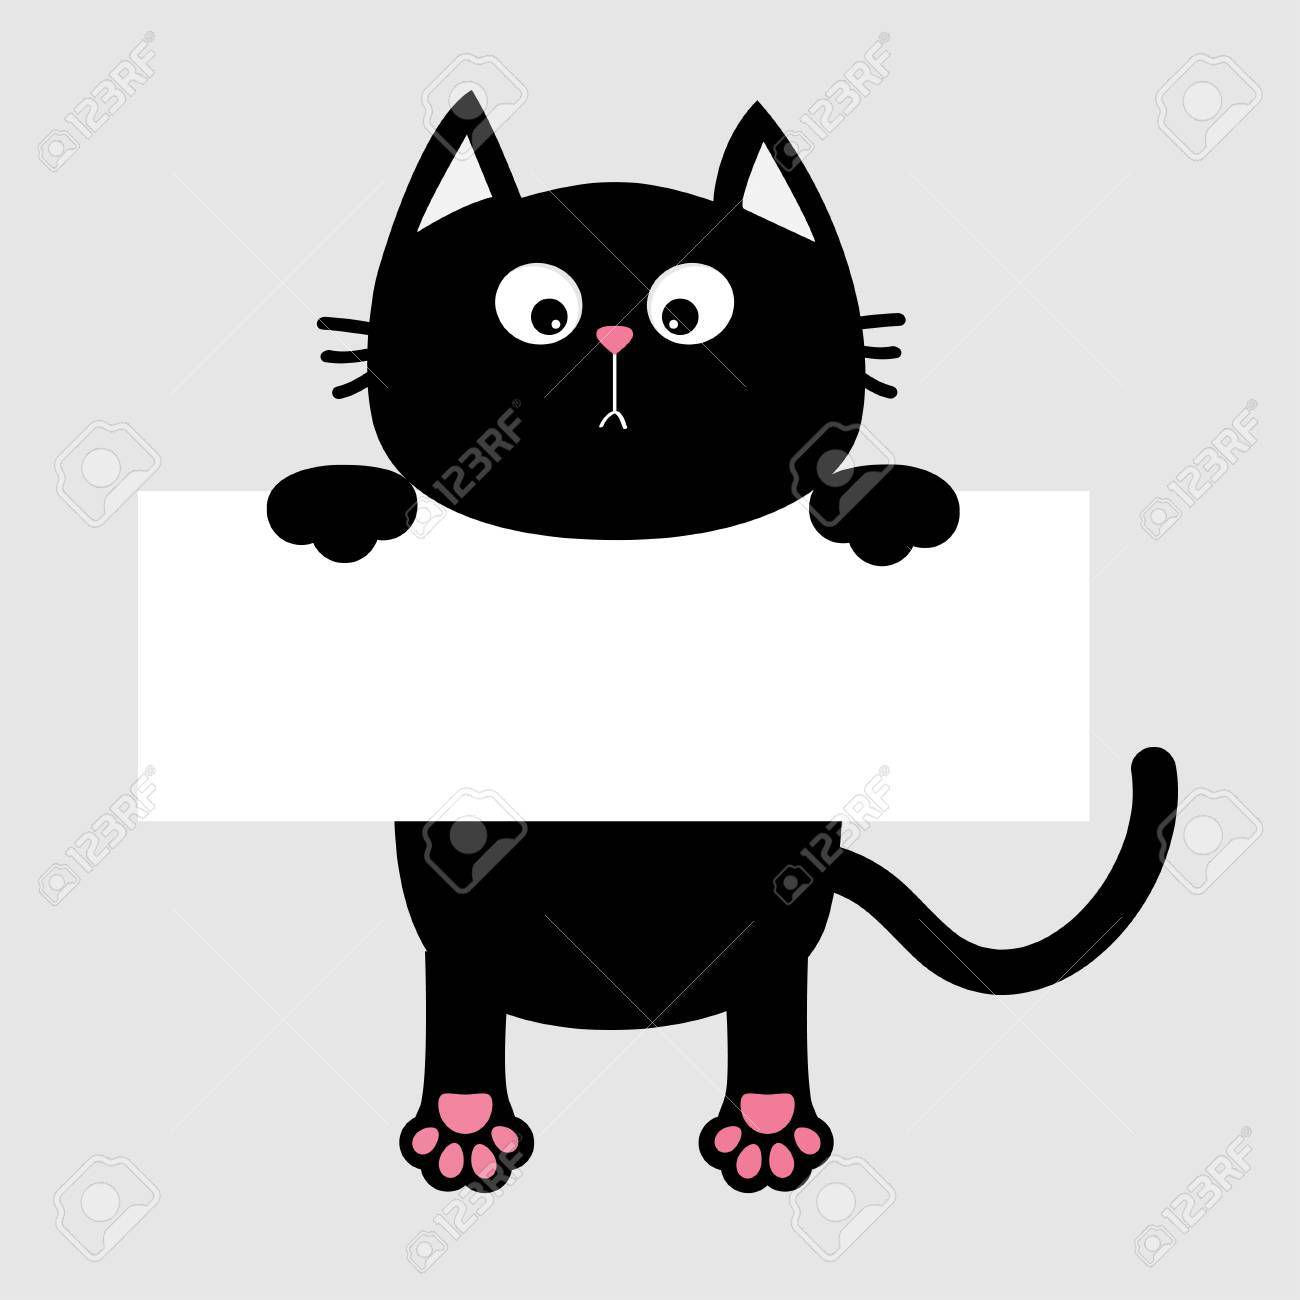 Black funny cat hanging on paper board template kitten body black funny cat hanging on paper board template kitten body with paw print tail pronofoot35fo Choice Image